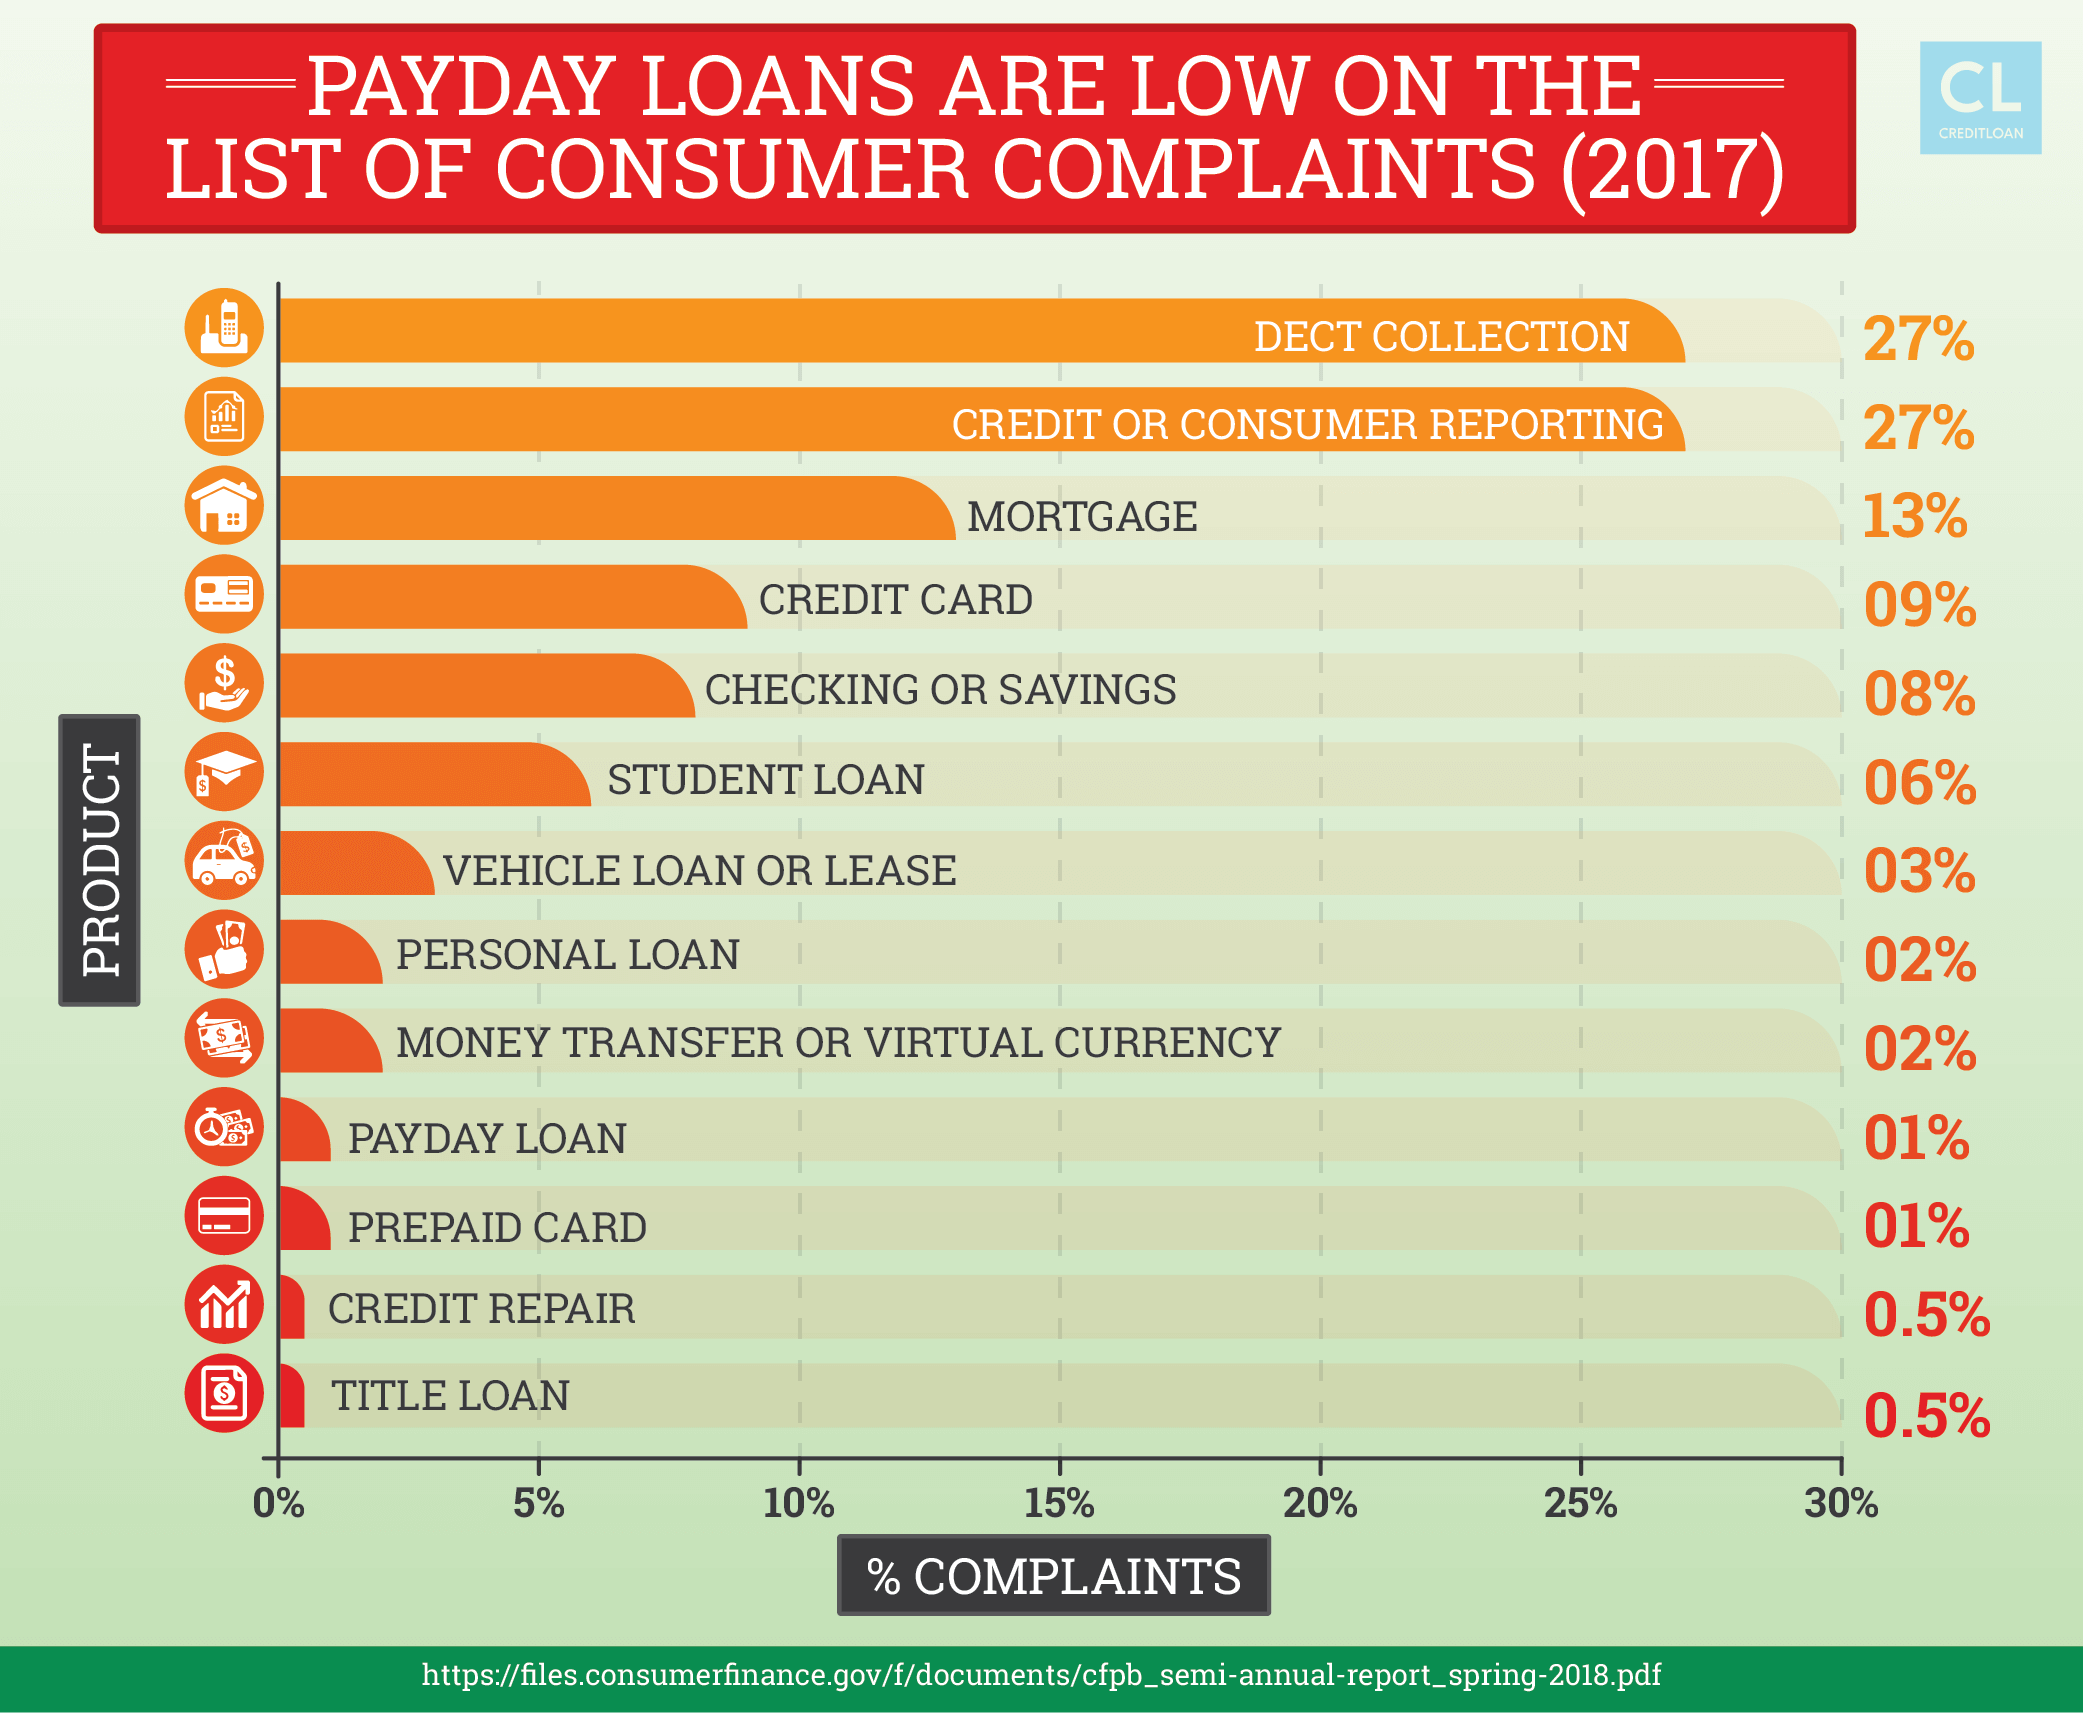 Payday Loans are Low on the List of Consumer Complaints